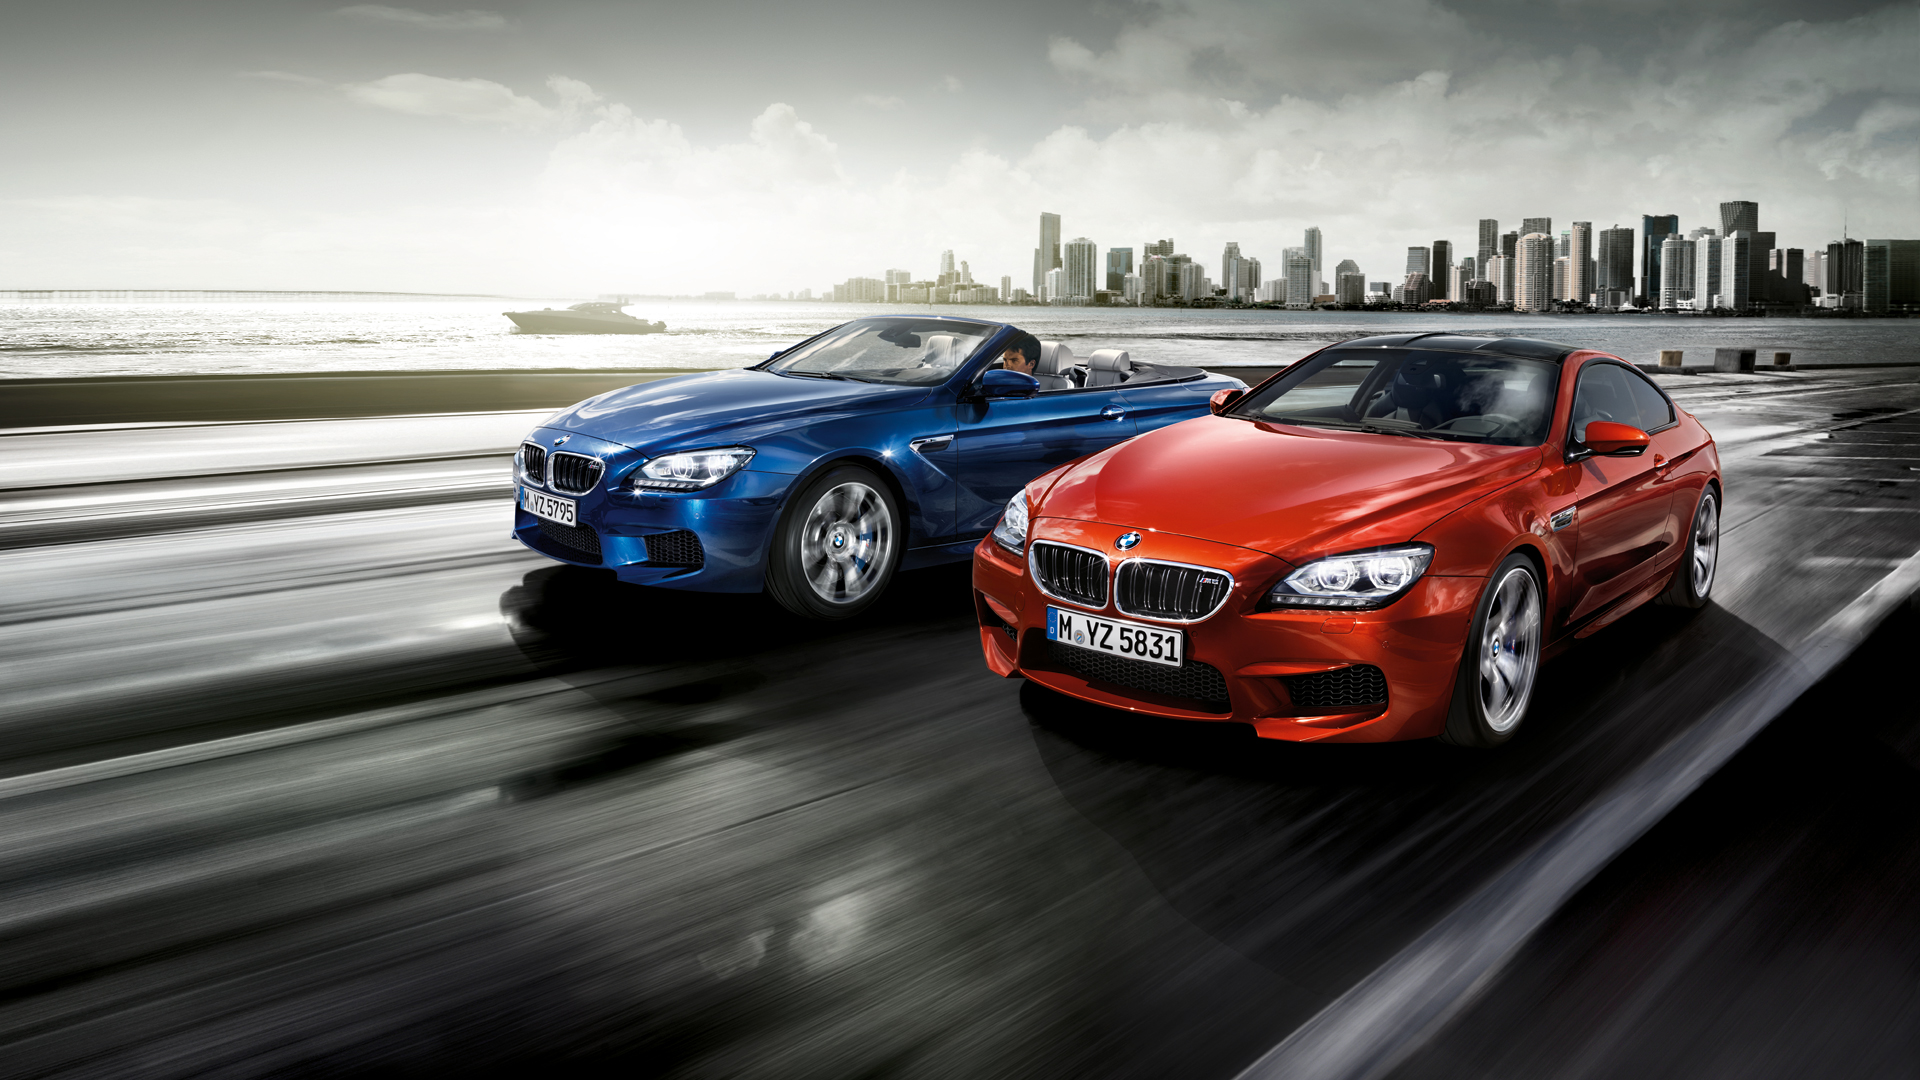 Bmw M6 Wallpapers High Quality | Download Free